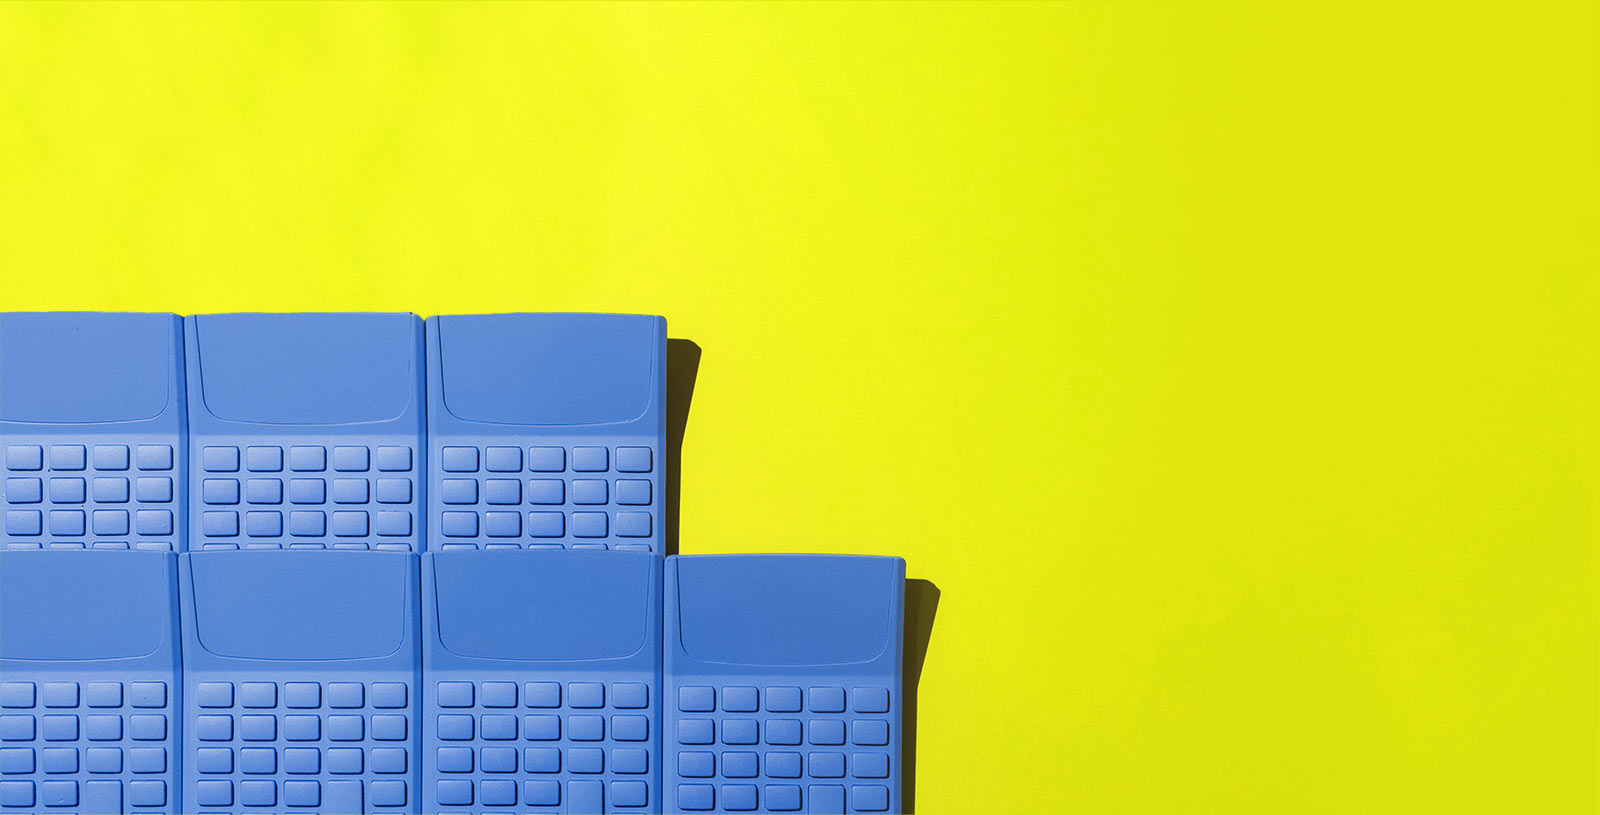 a group of blue calculators on a yellow background